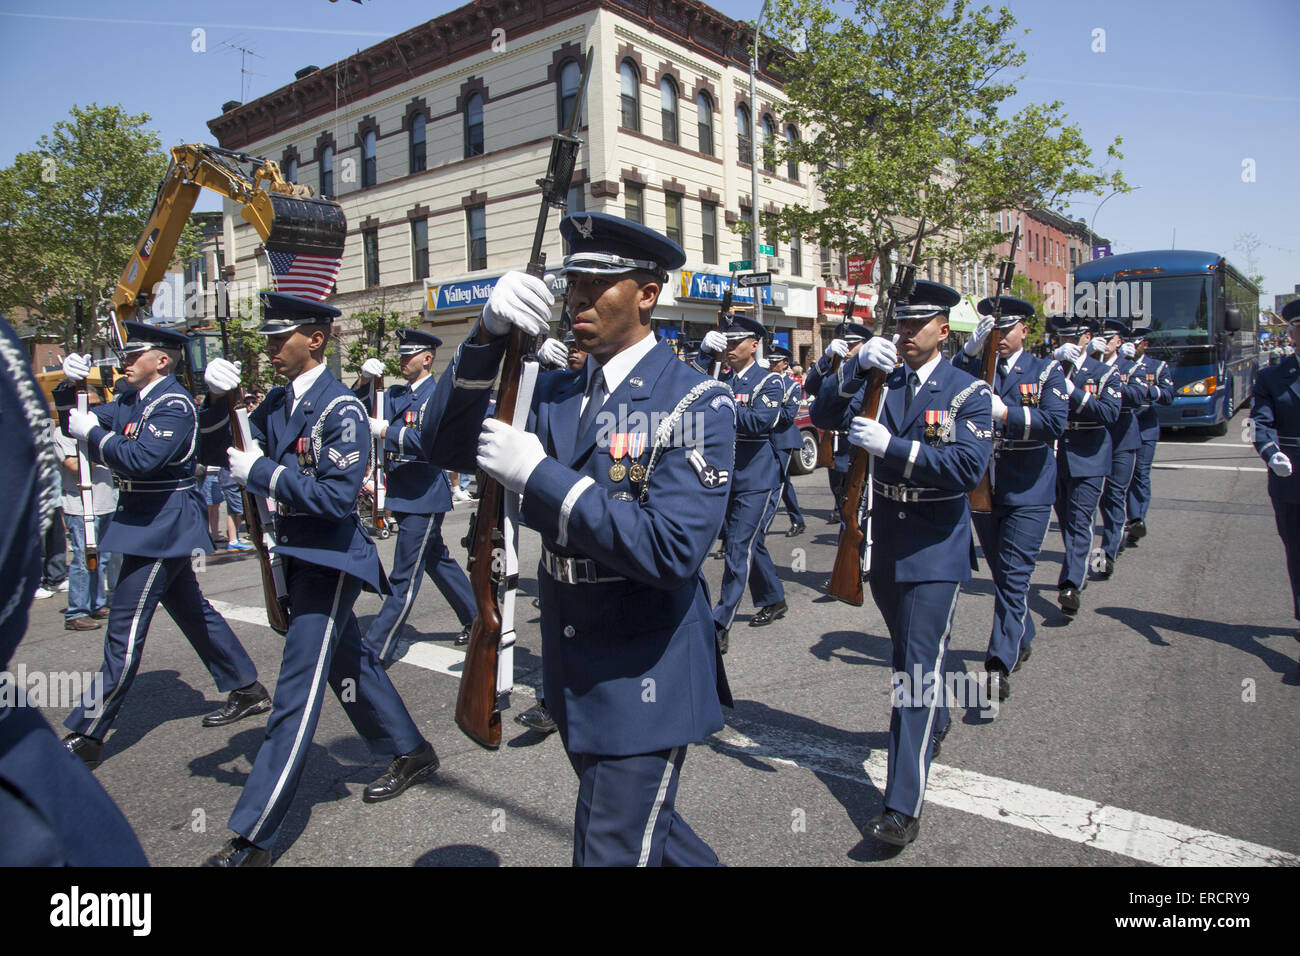 US Air Force officers with medals march in the Memorial Day Parade in Bay Ridge, Brooklyn, NY. - Stock Image